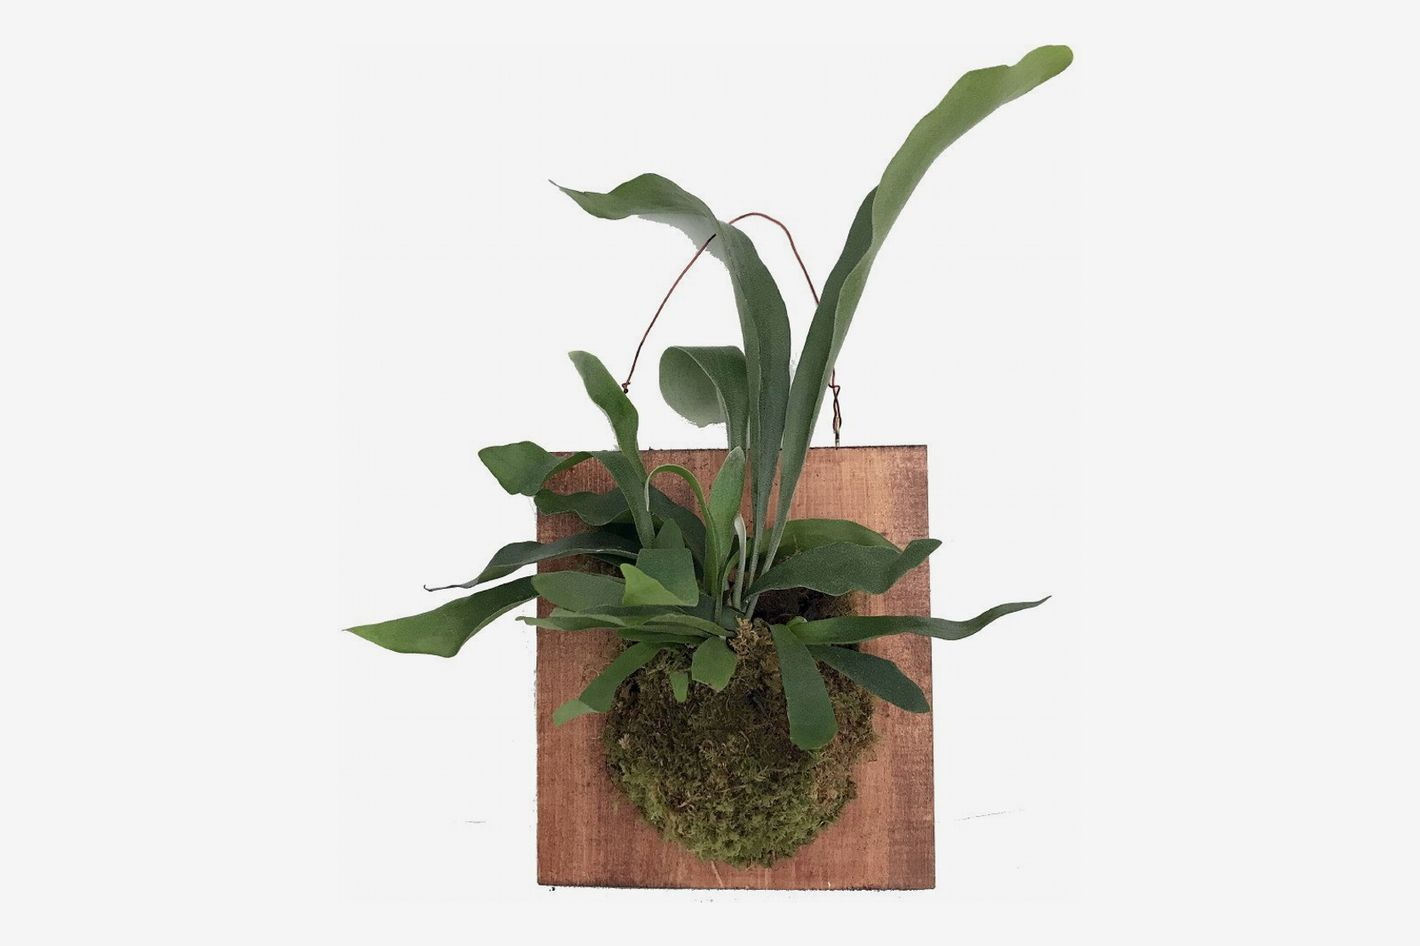 Hirt's Gardens Large Mounted Staghorn Fern, 10-Inch by 9-Inch Walnut Stain Plaque